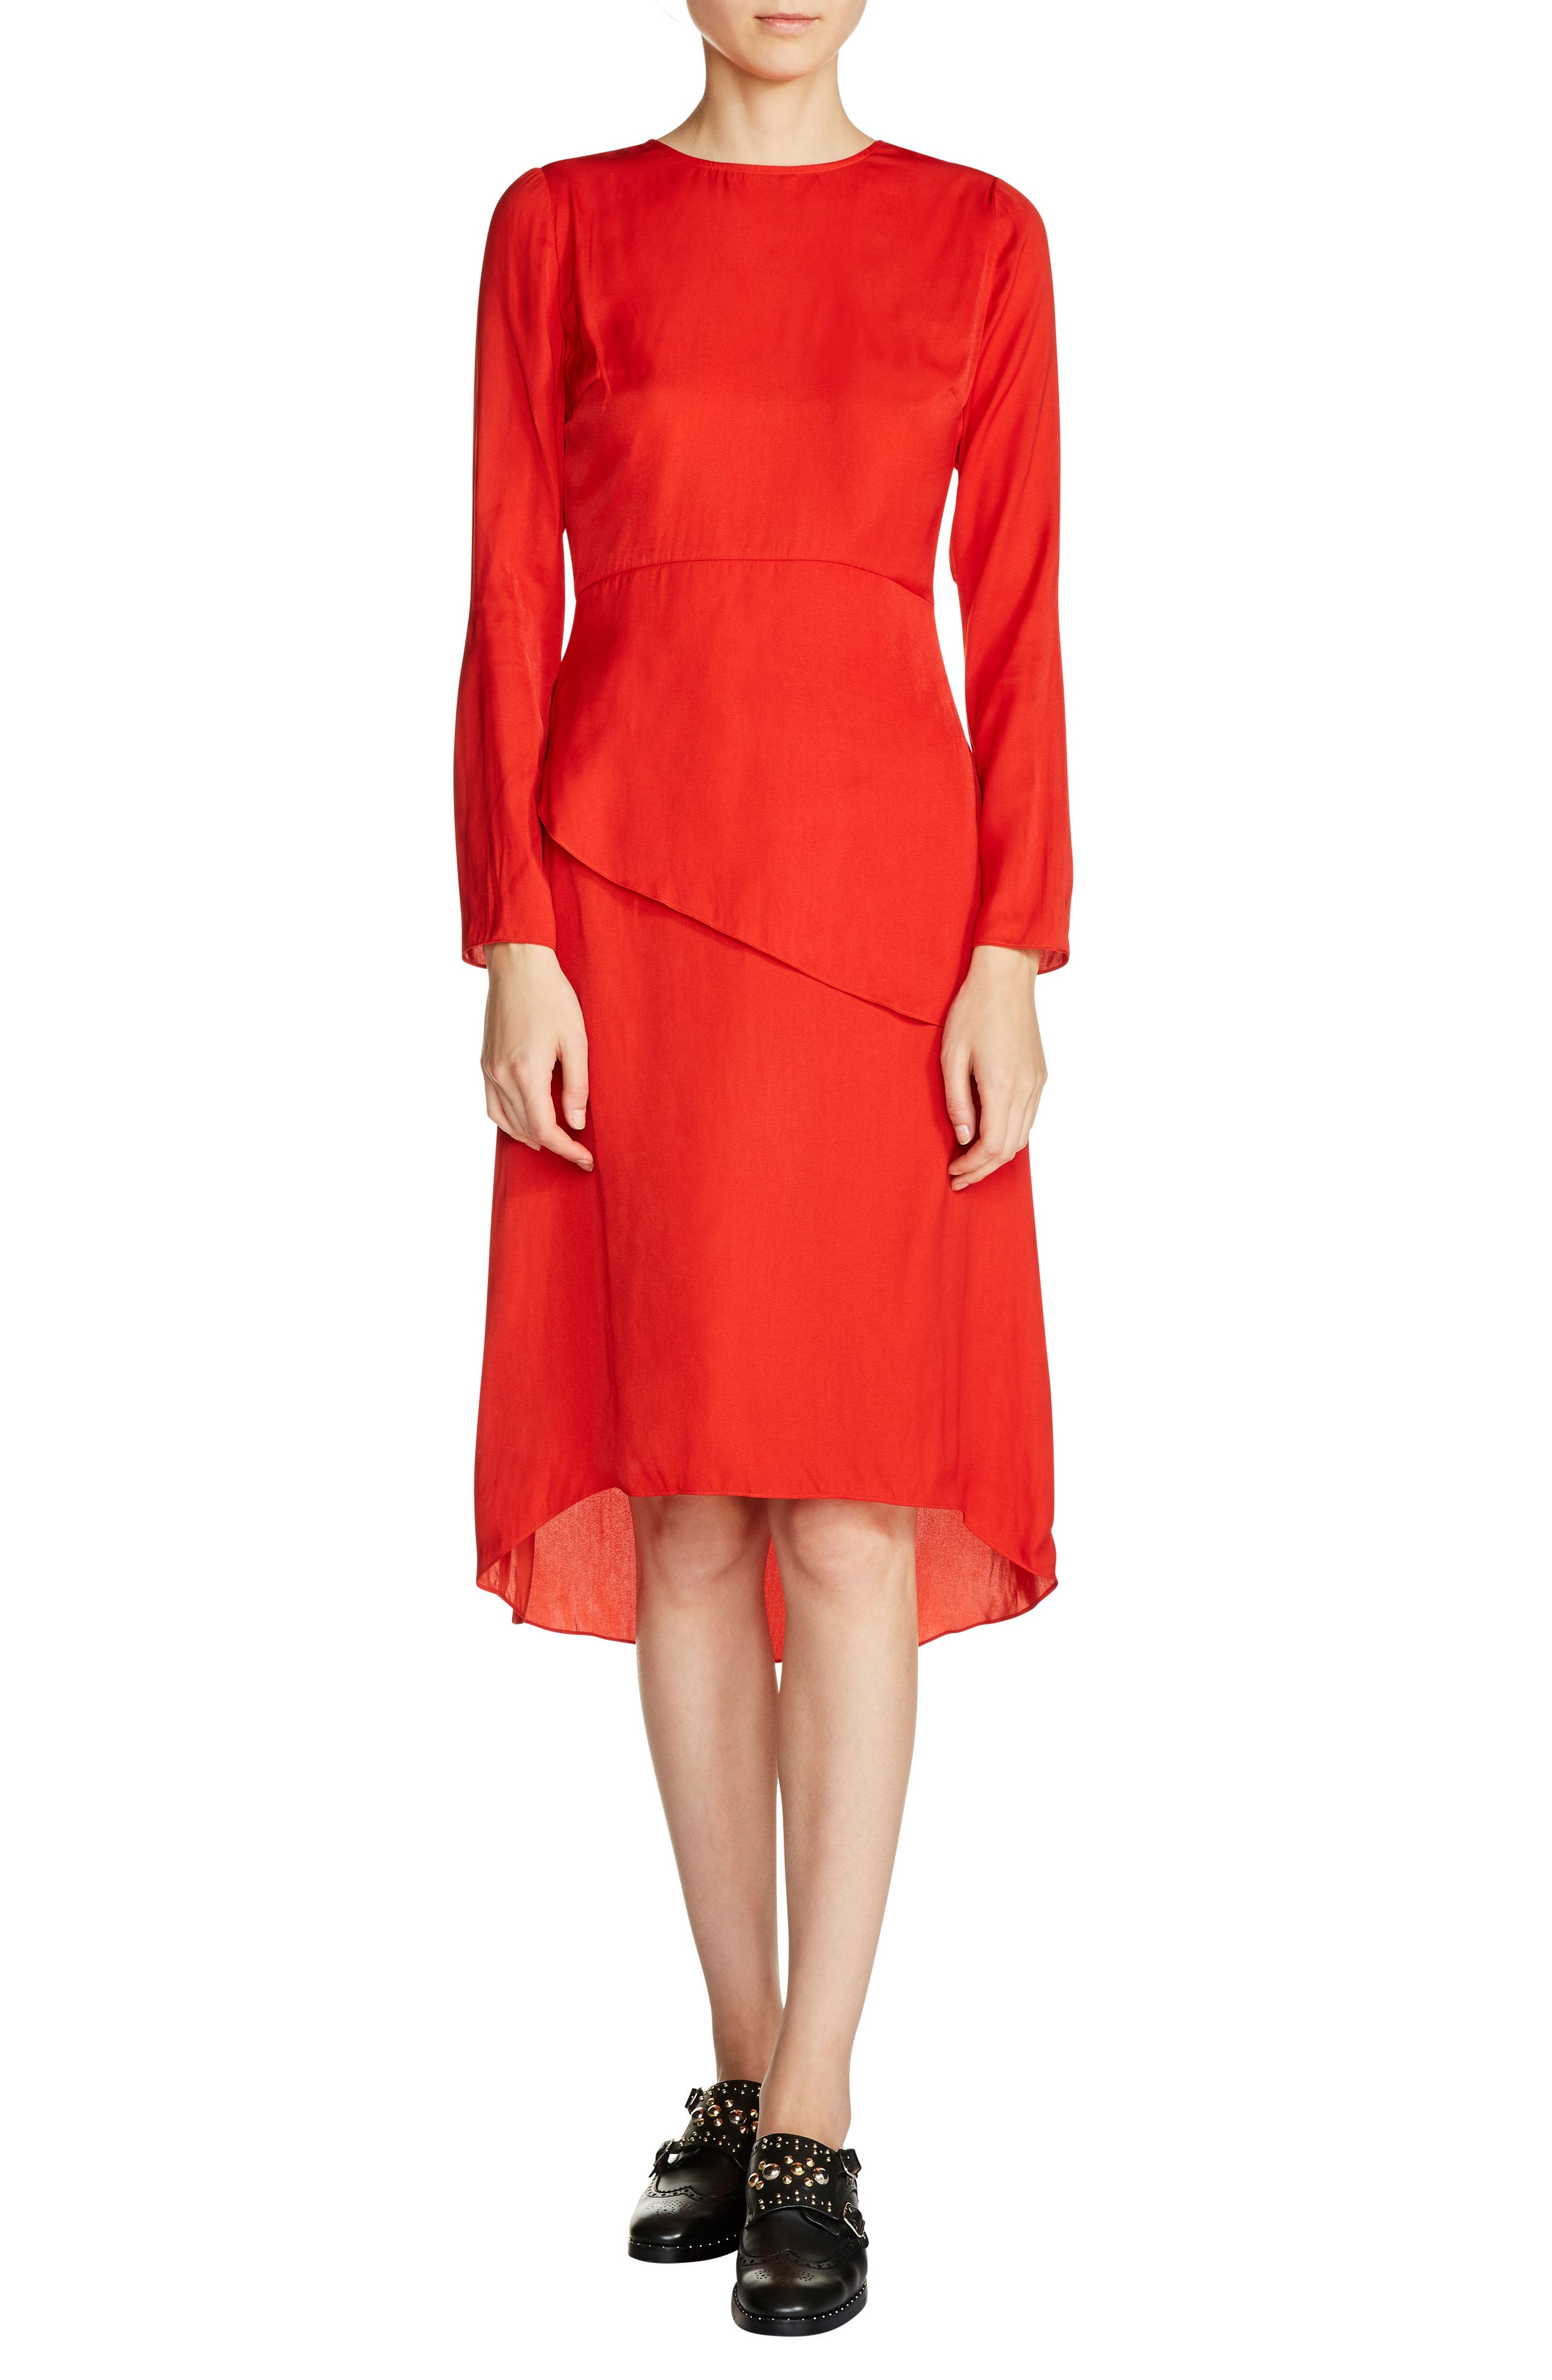 Tiered A-Line Dress,                             Main thumbnail 1, color,                             600